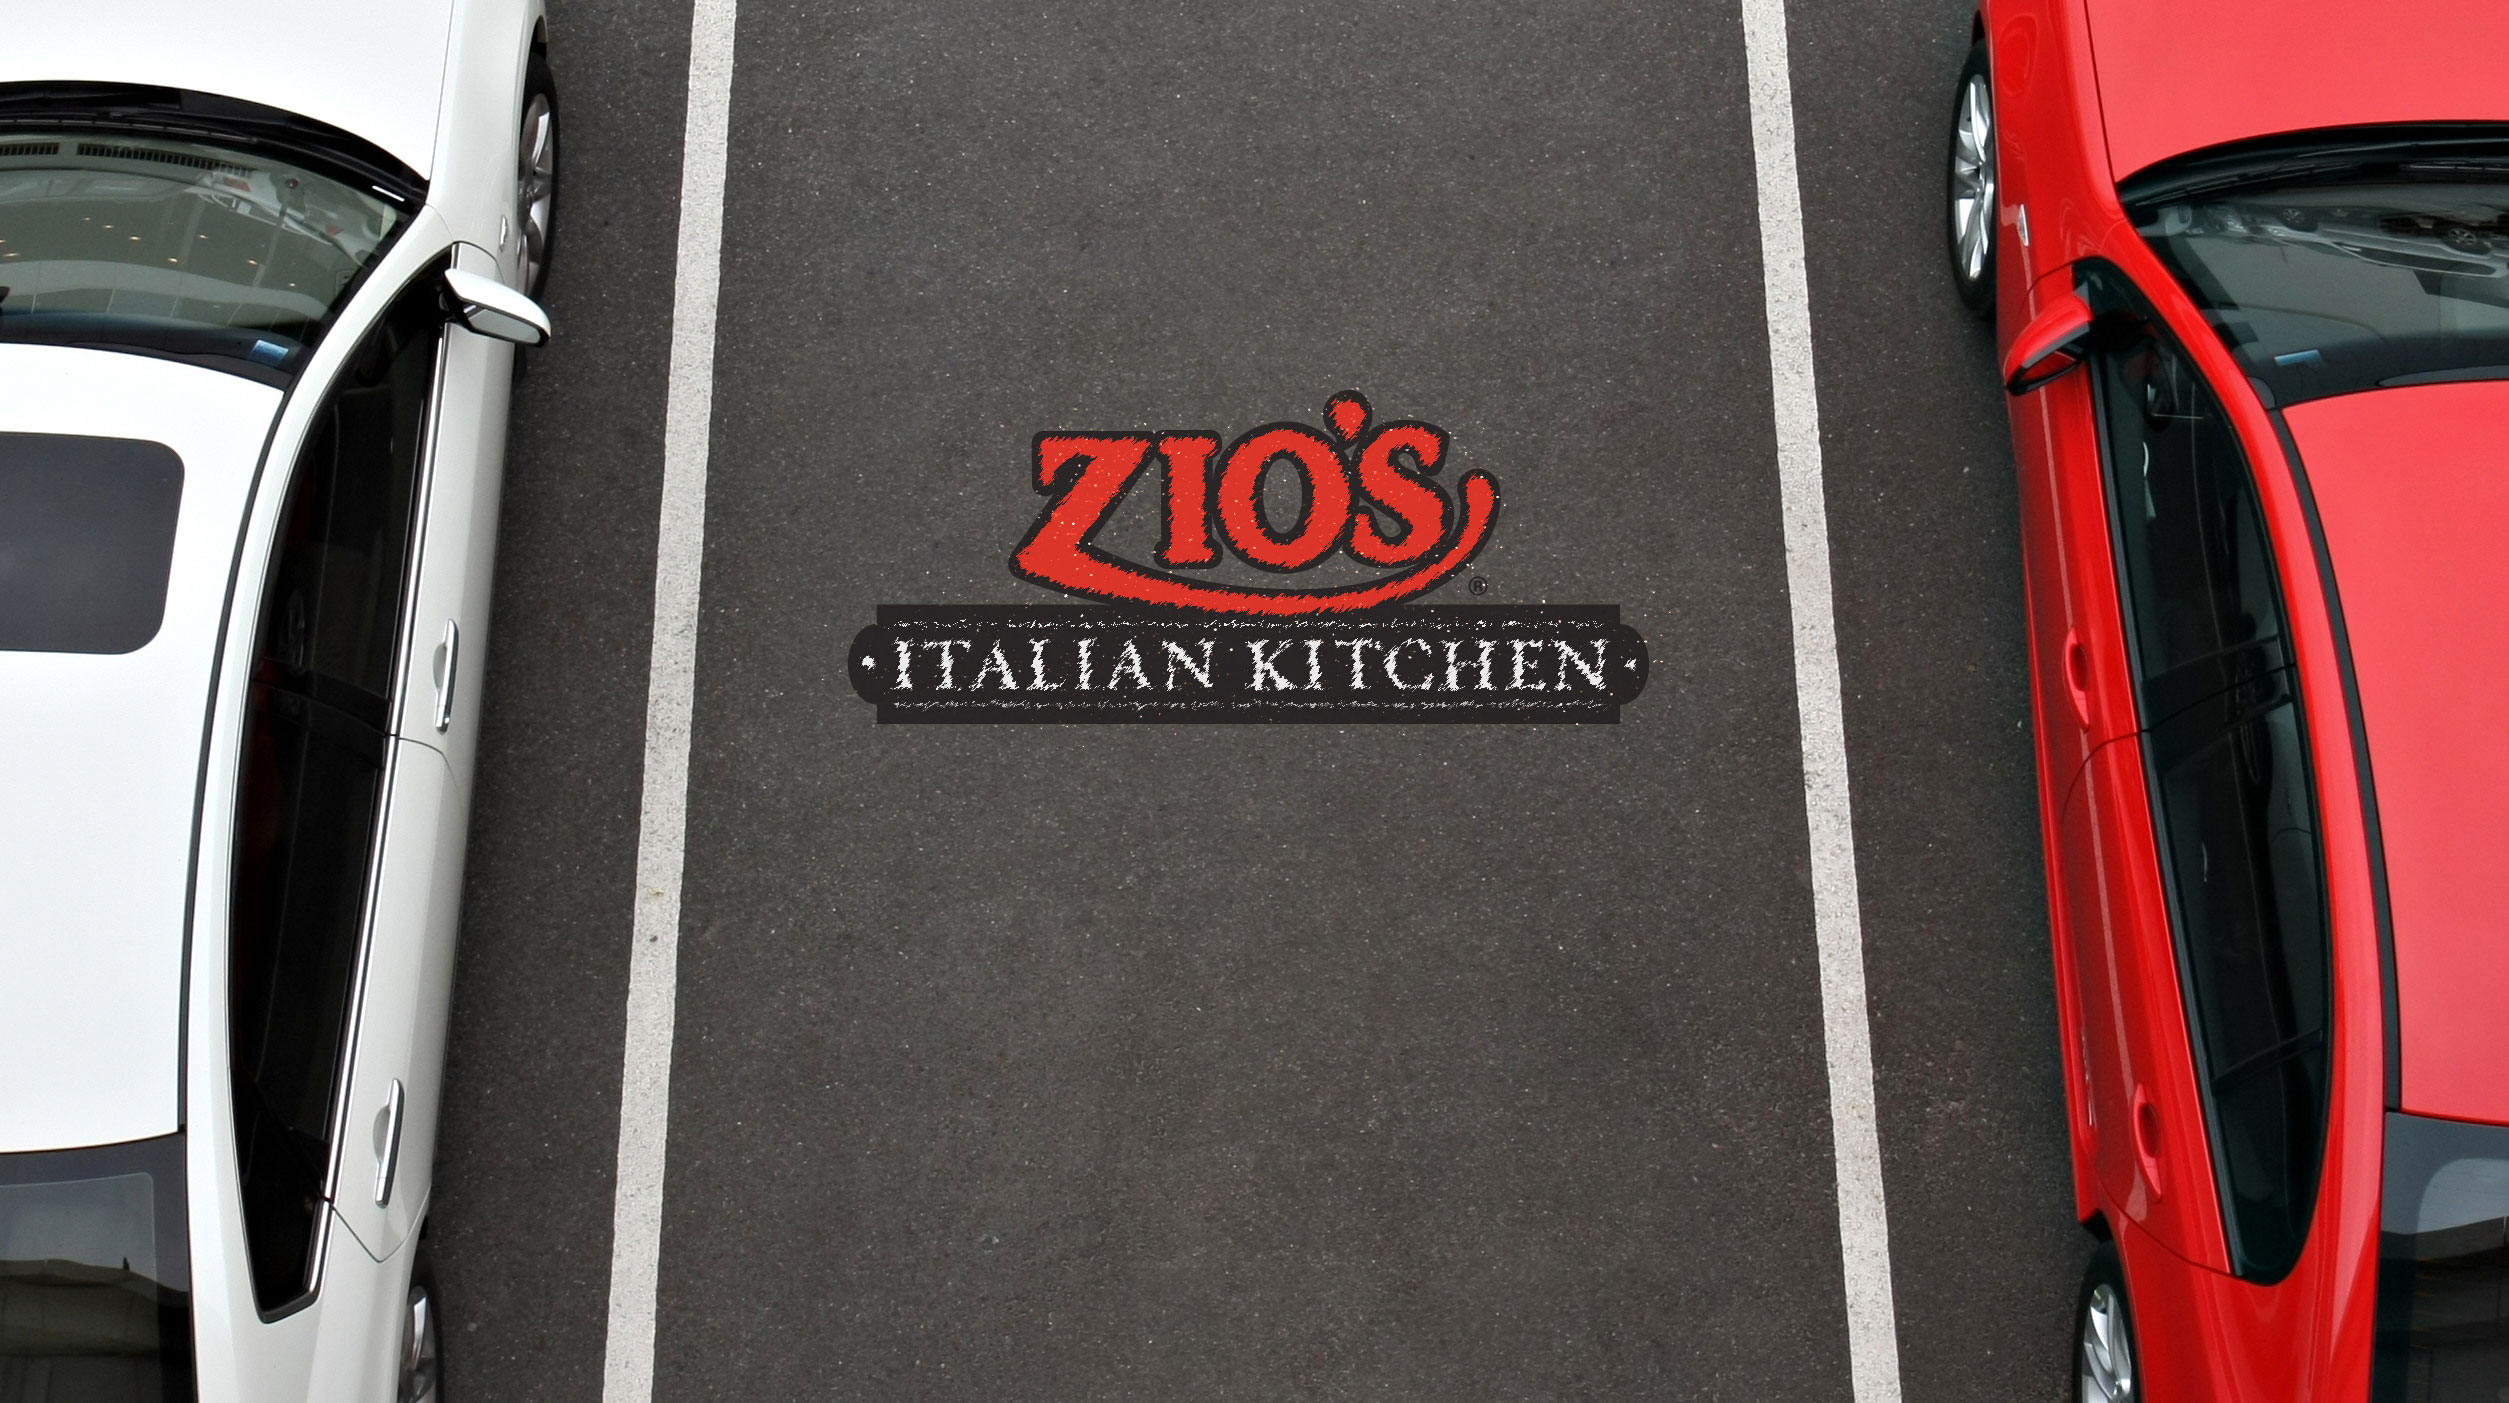 Zio s express curbside to go zios italian kitchen for Zios italian kitchen